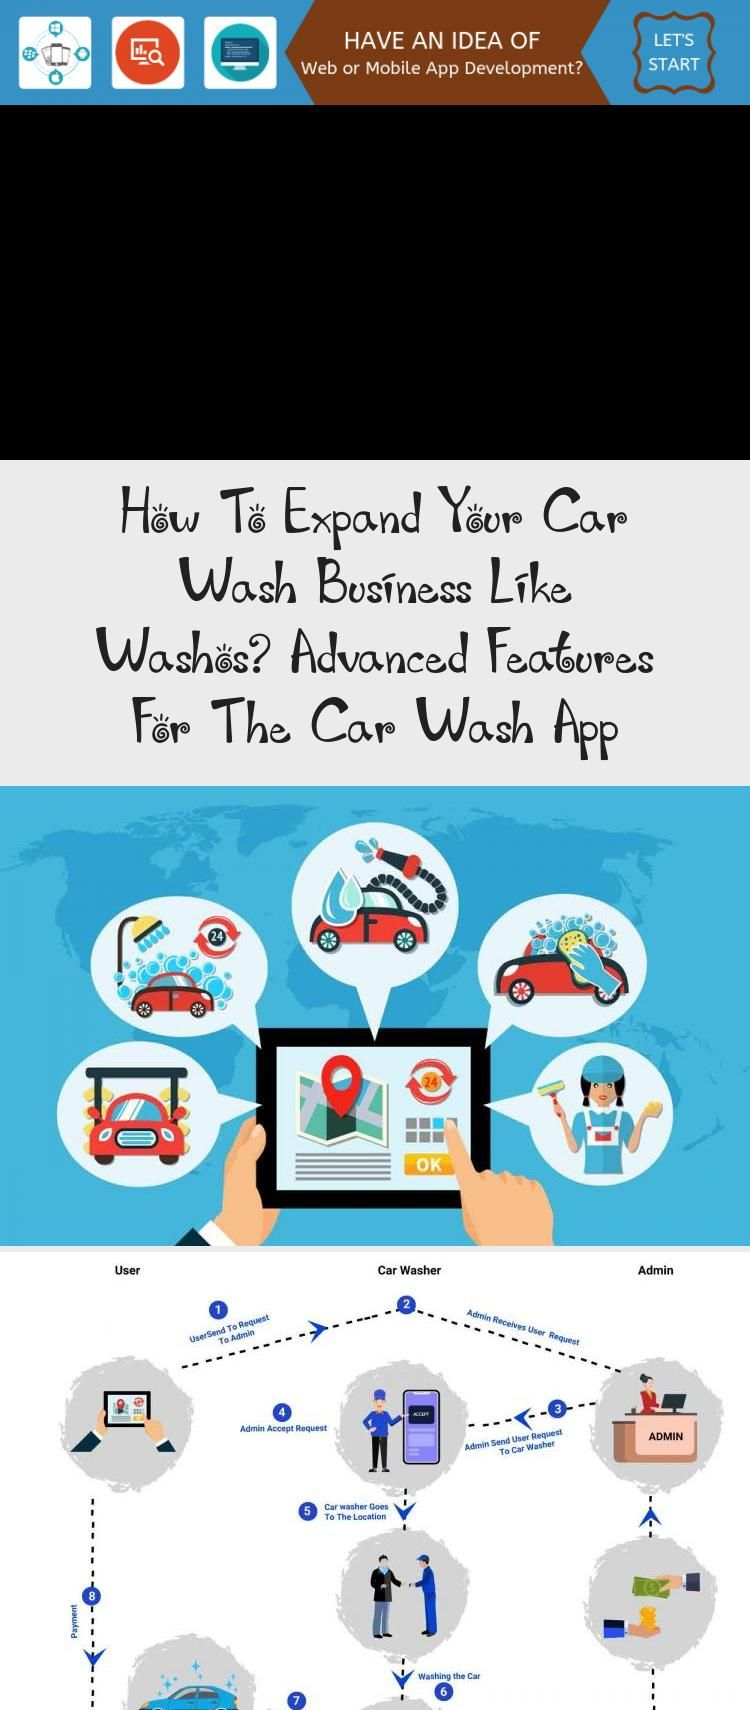 How To Expand Your Car Wash Business Like Washos Advanced Features For The Car Wash App Technology Car Wash Car Wash Business Car Wash Services